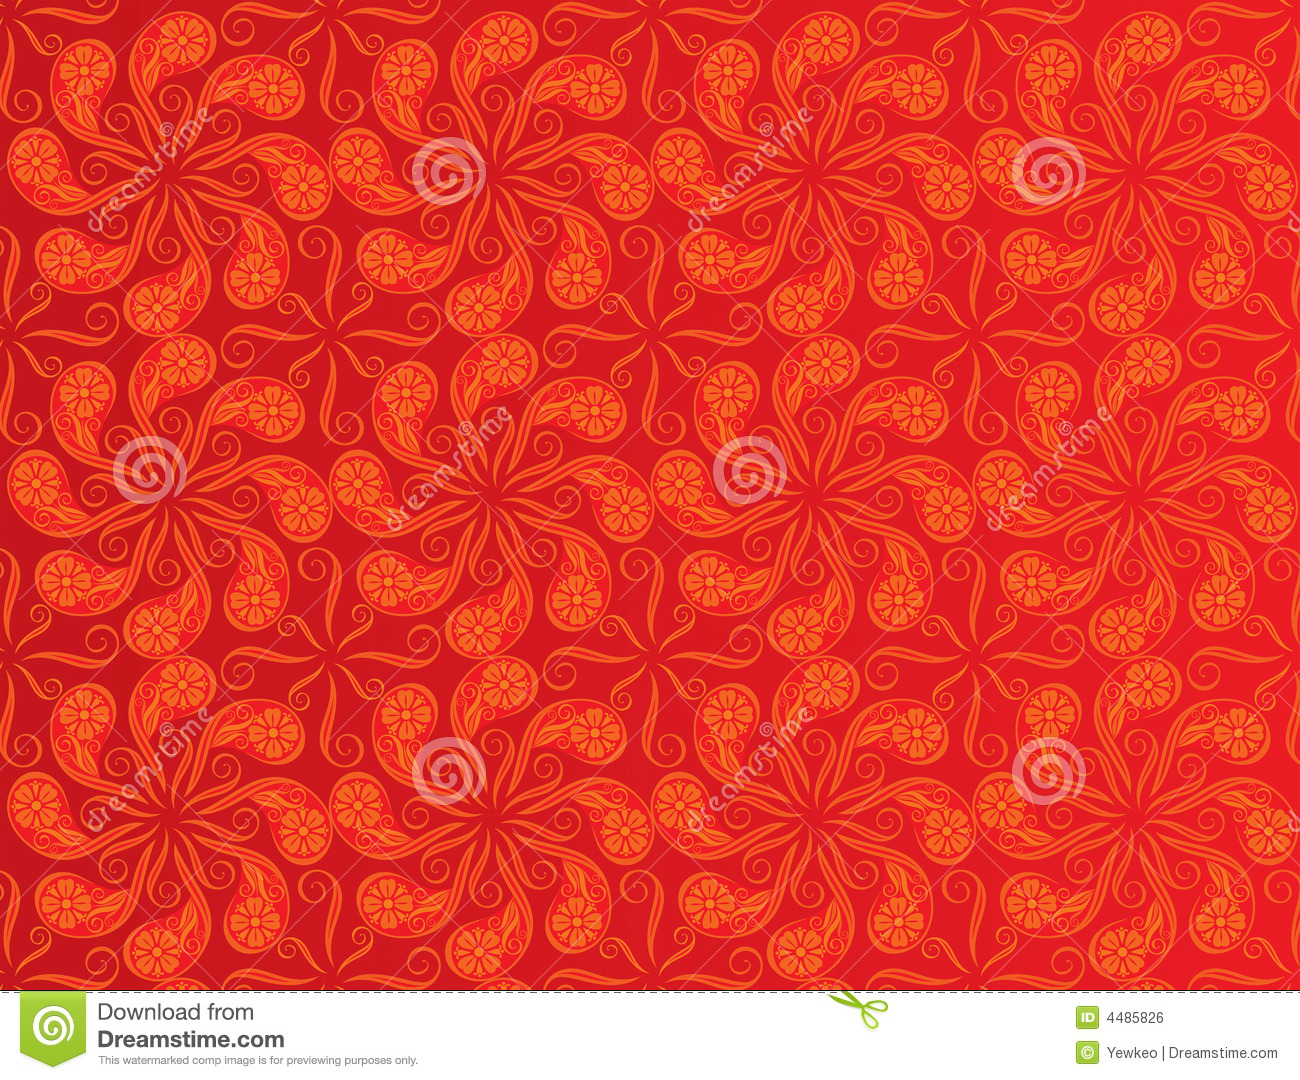 Red color pattern design royalty free stock image image - Dreaming about the color red ...